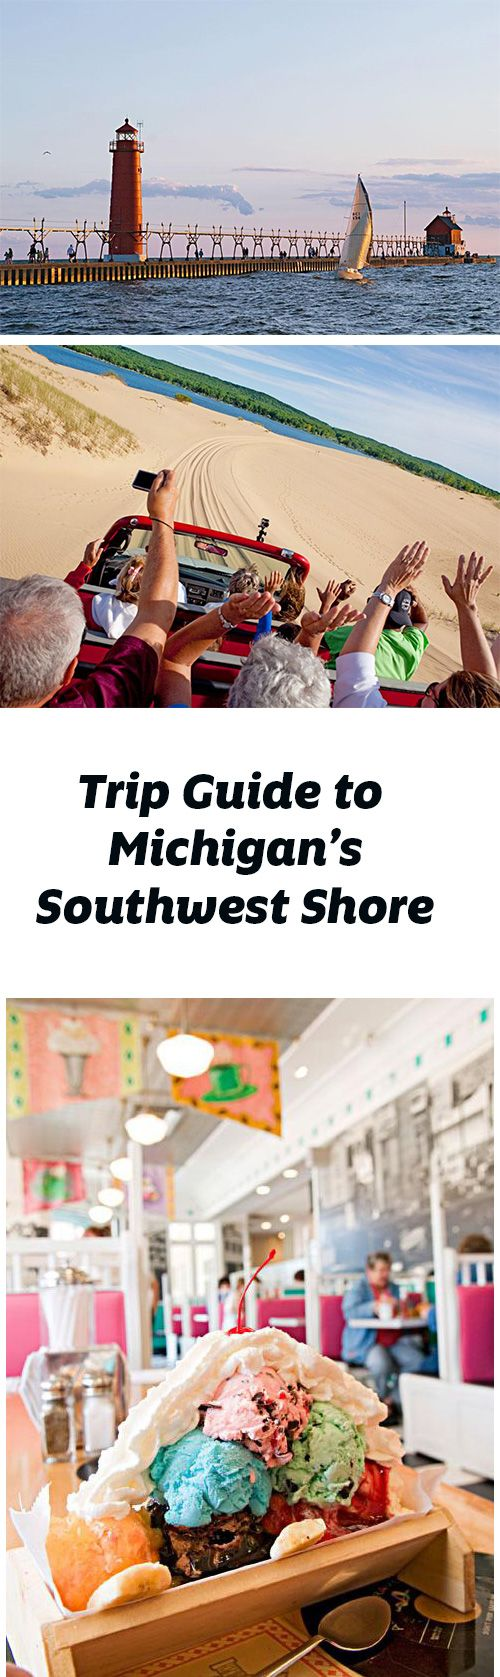 Lighthouses, dune buggy rides, powder-fine sand and the deep blue water of Lake Michigan draw visitors to the towns of Michigan's southwest shore. Trip guide: http://www.midwestliving.com/travel/michigan/explore-michigans-southwest-shore/